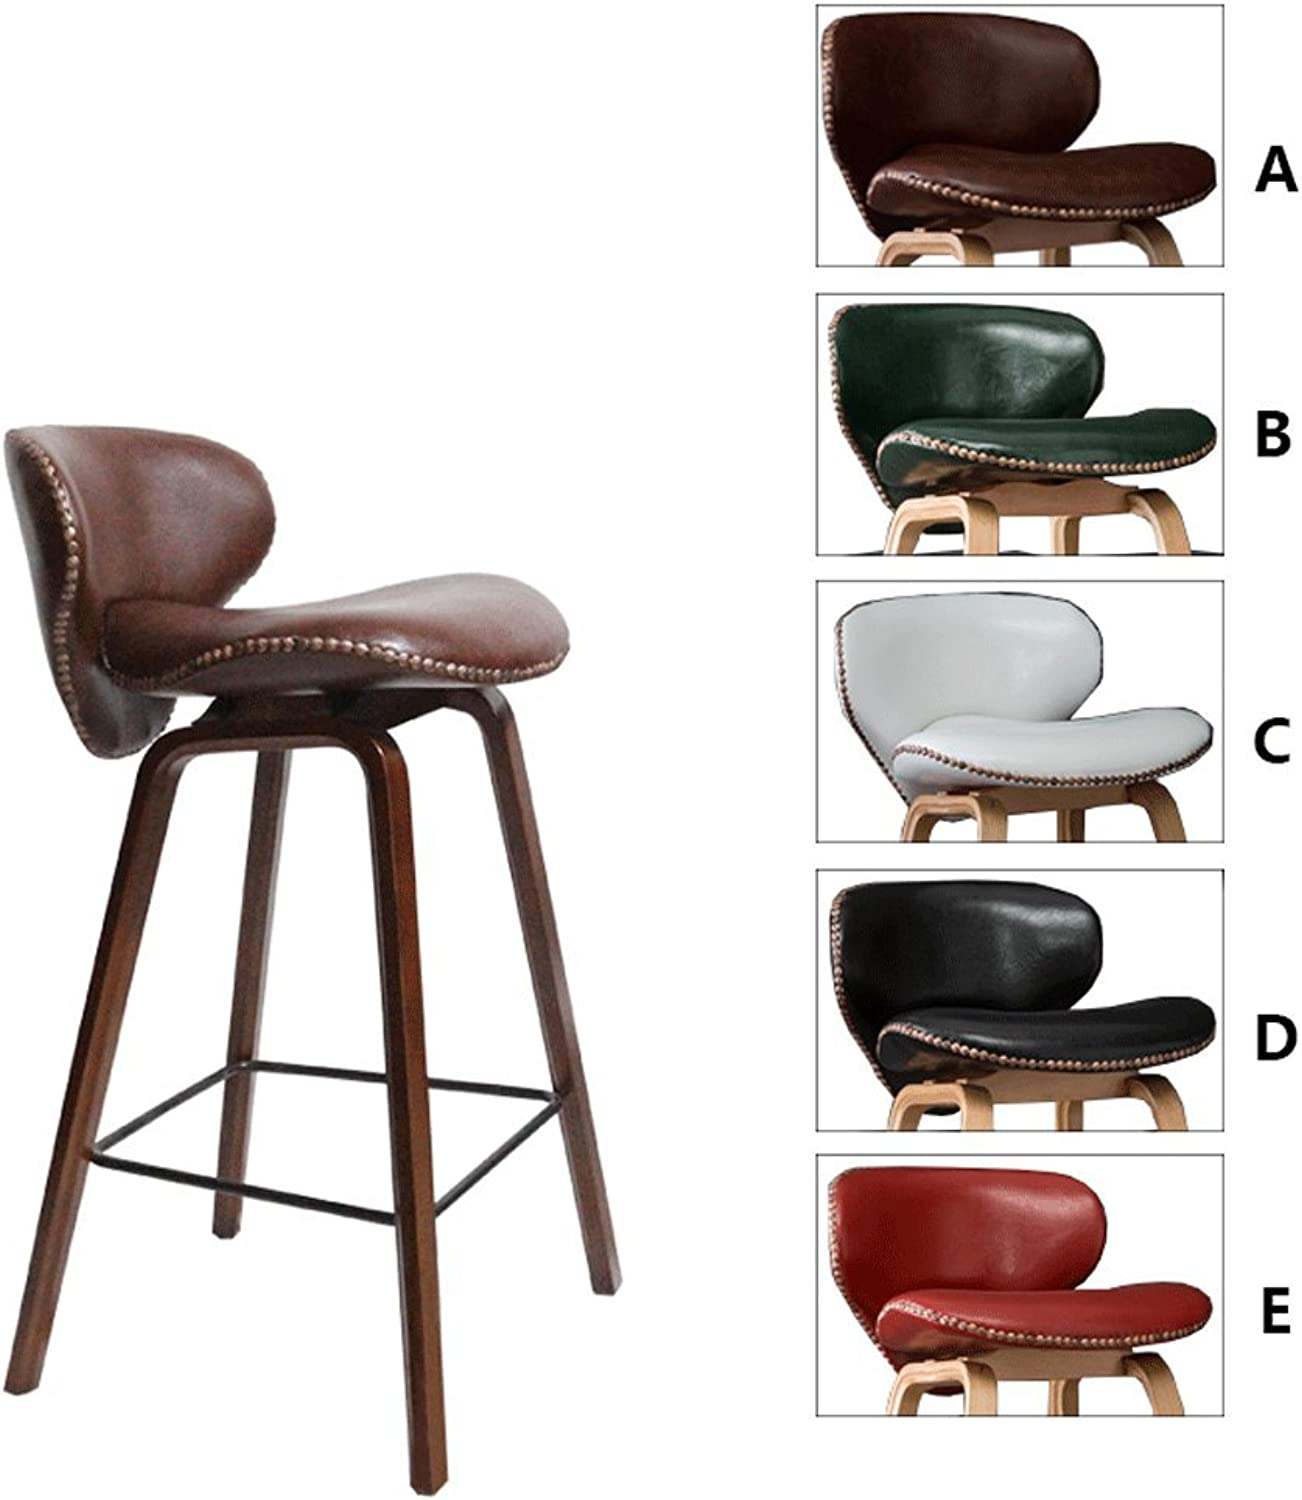 TXXM Barstools Solid Wood bar stools, Furniture Decorative stools, Leisure Chairs, (color   A  Brown, Size   H69CM)